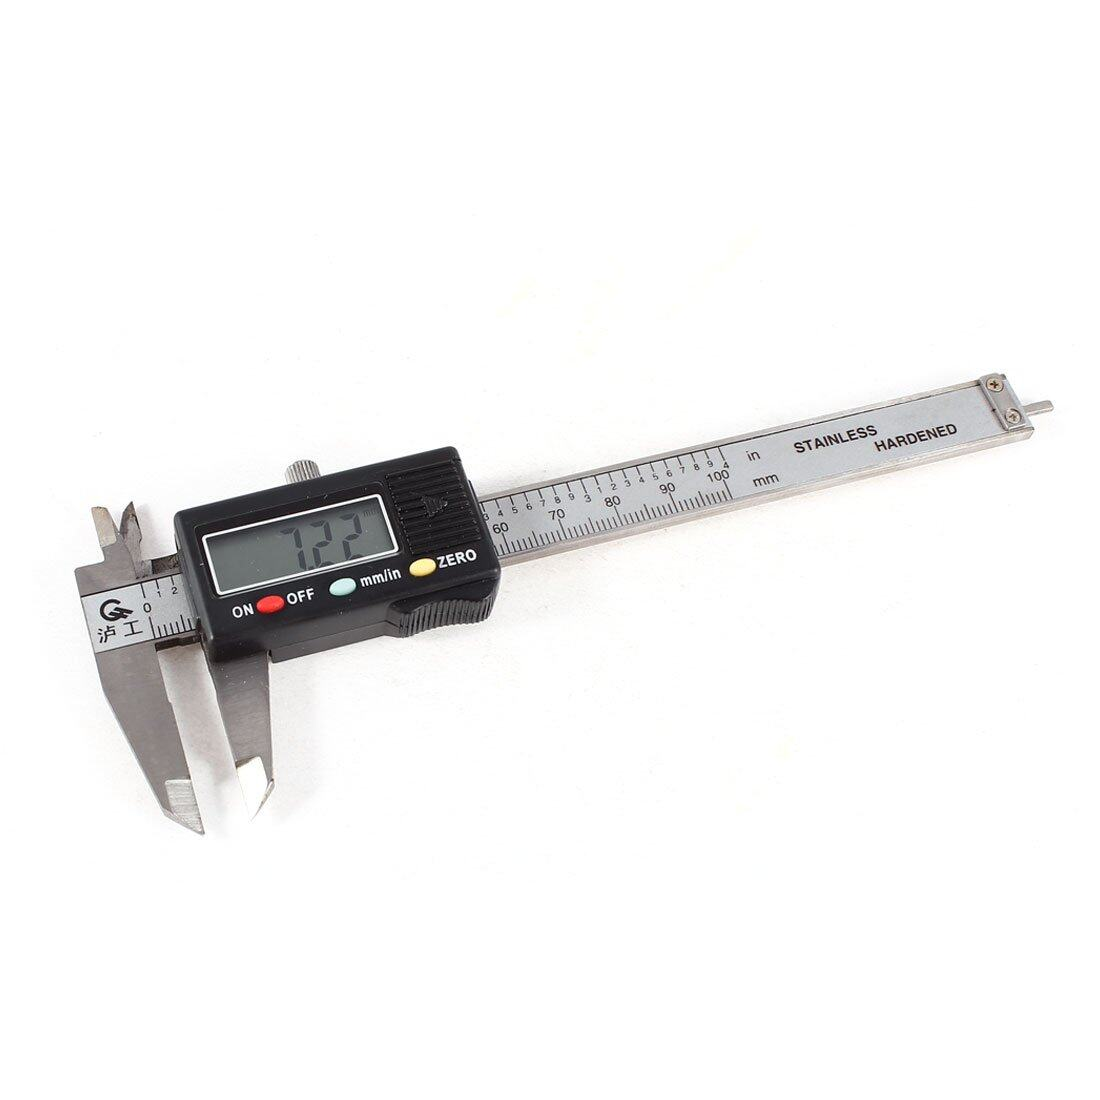 Mini Digital Caliper 0 - 100mm with Plastic Case